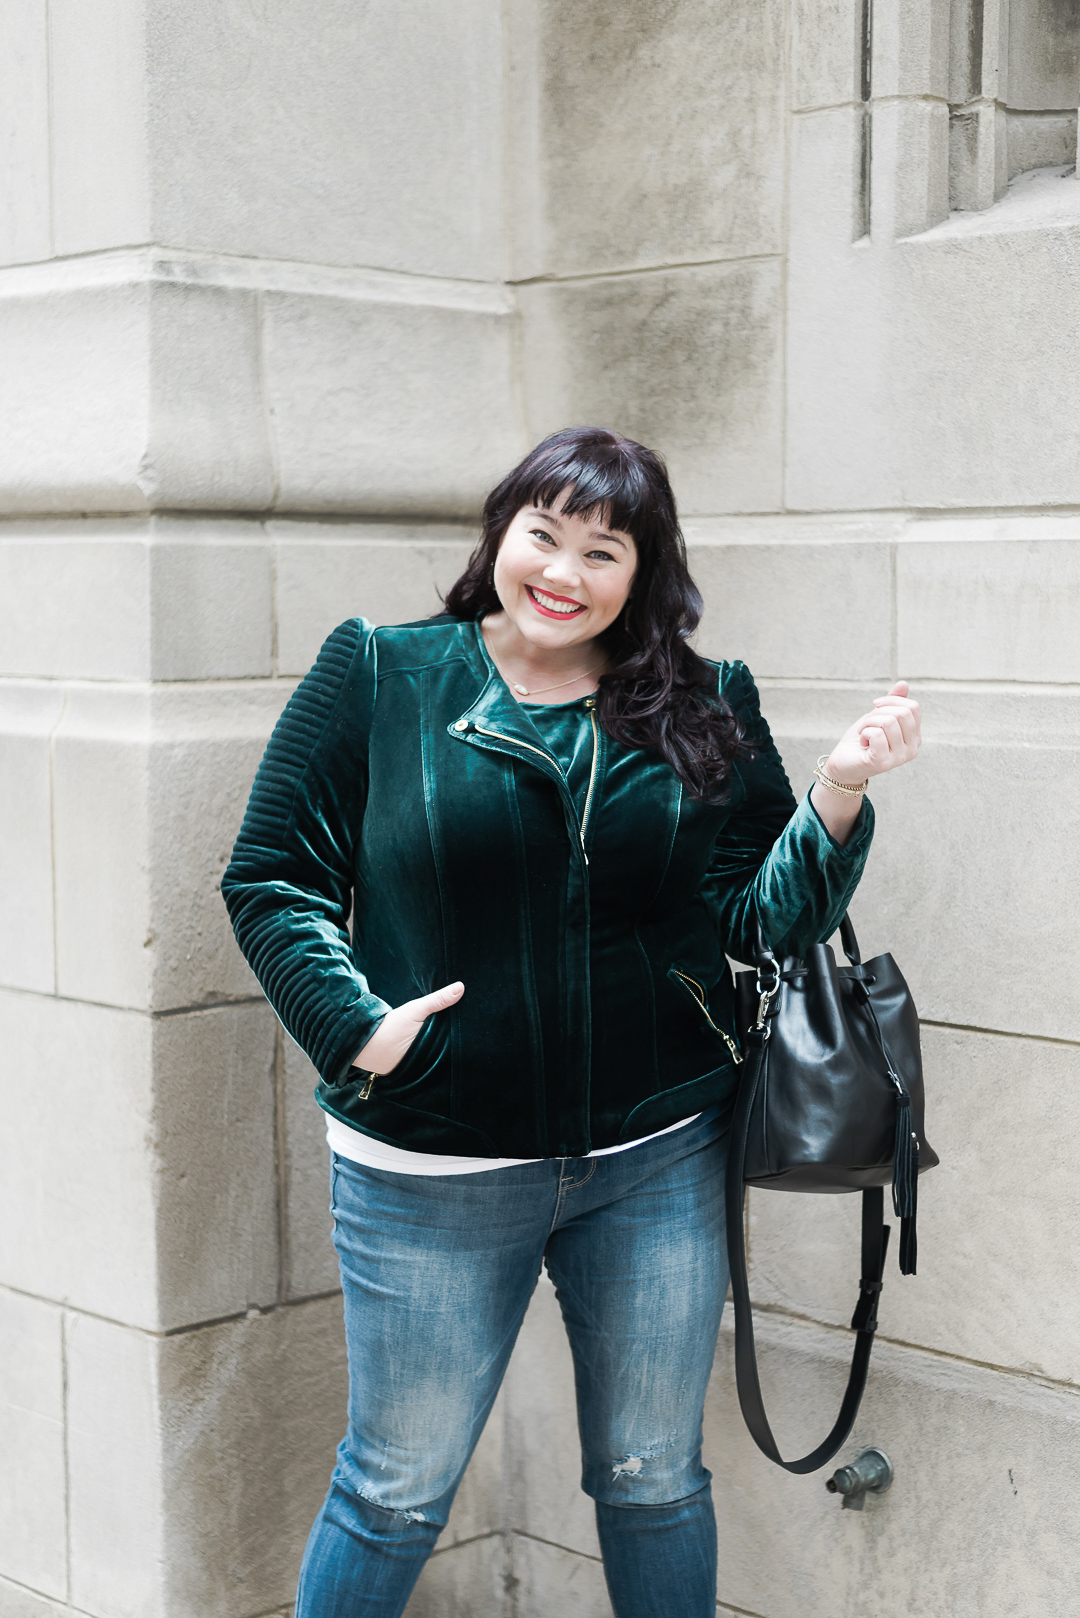 Emerald Green Plus Size, Macy's, Rachel Roy, Plus Size Style, Plus Size Fashion, Style Plus Curves, Chicago Blogger, Chicago Plus Size Blogger, Plus Size Blogger, Amber McCulloch